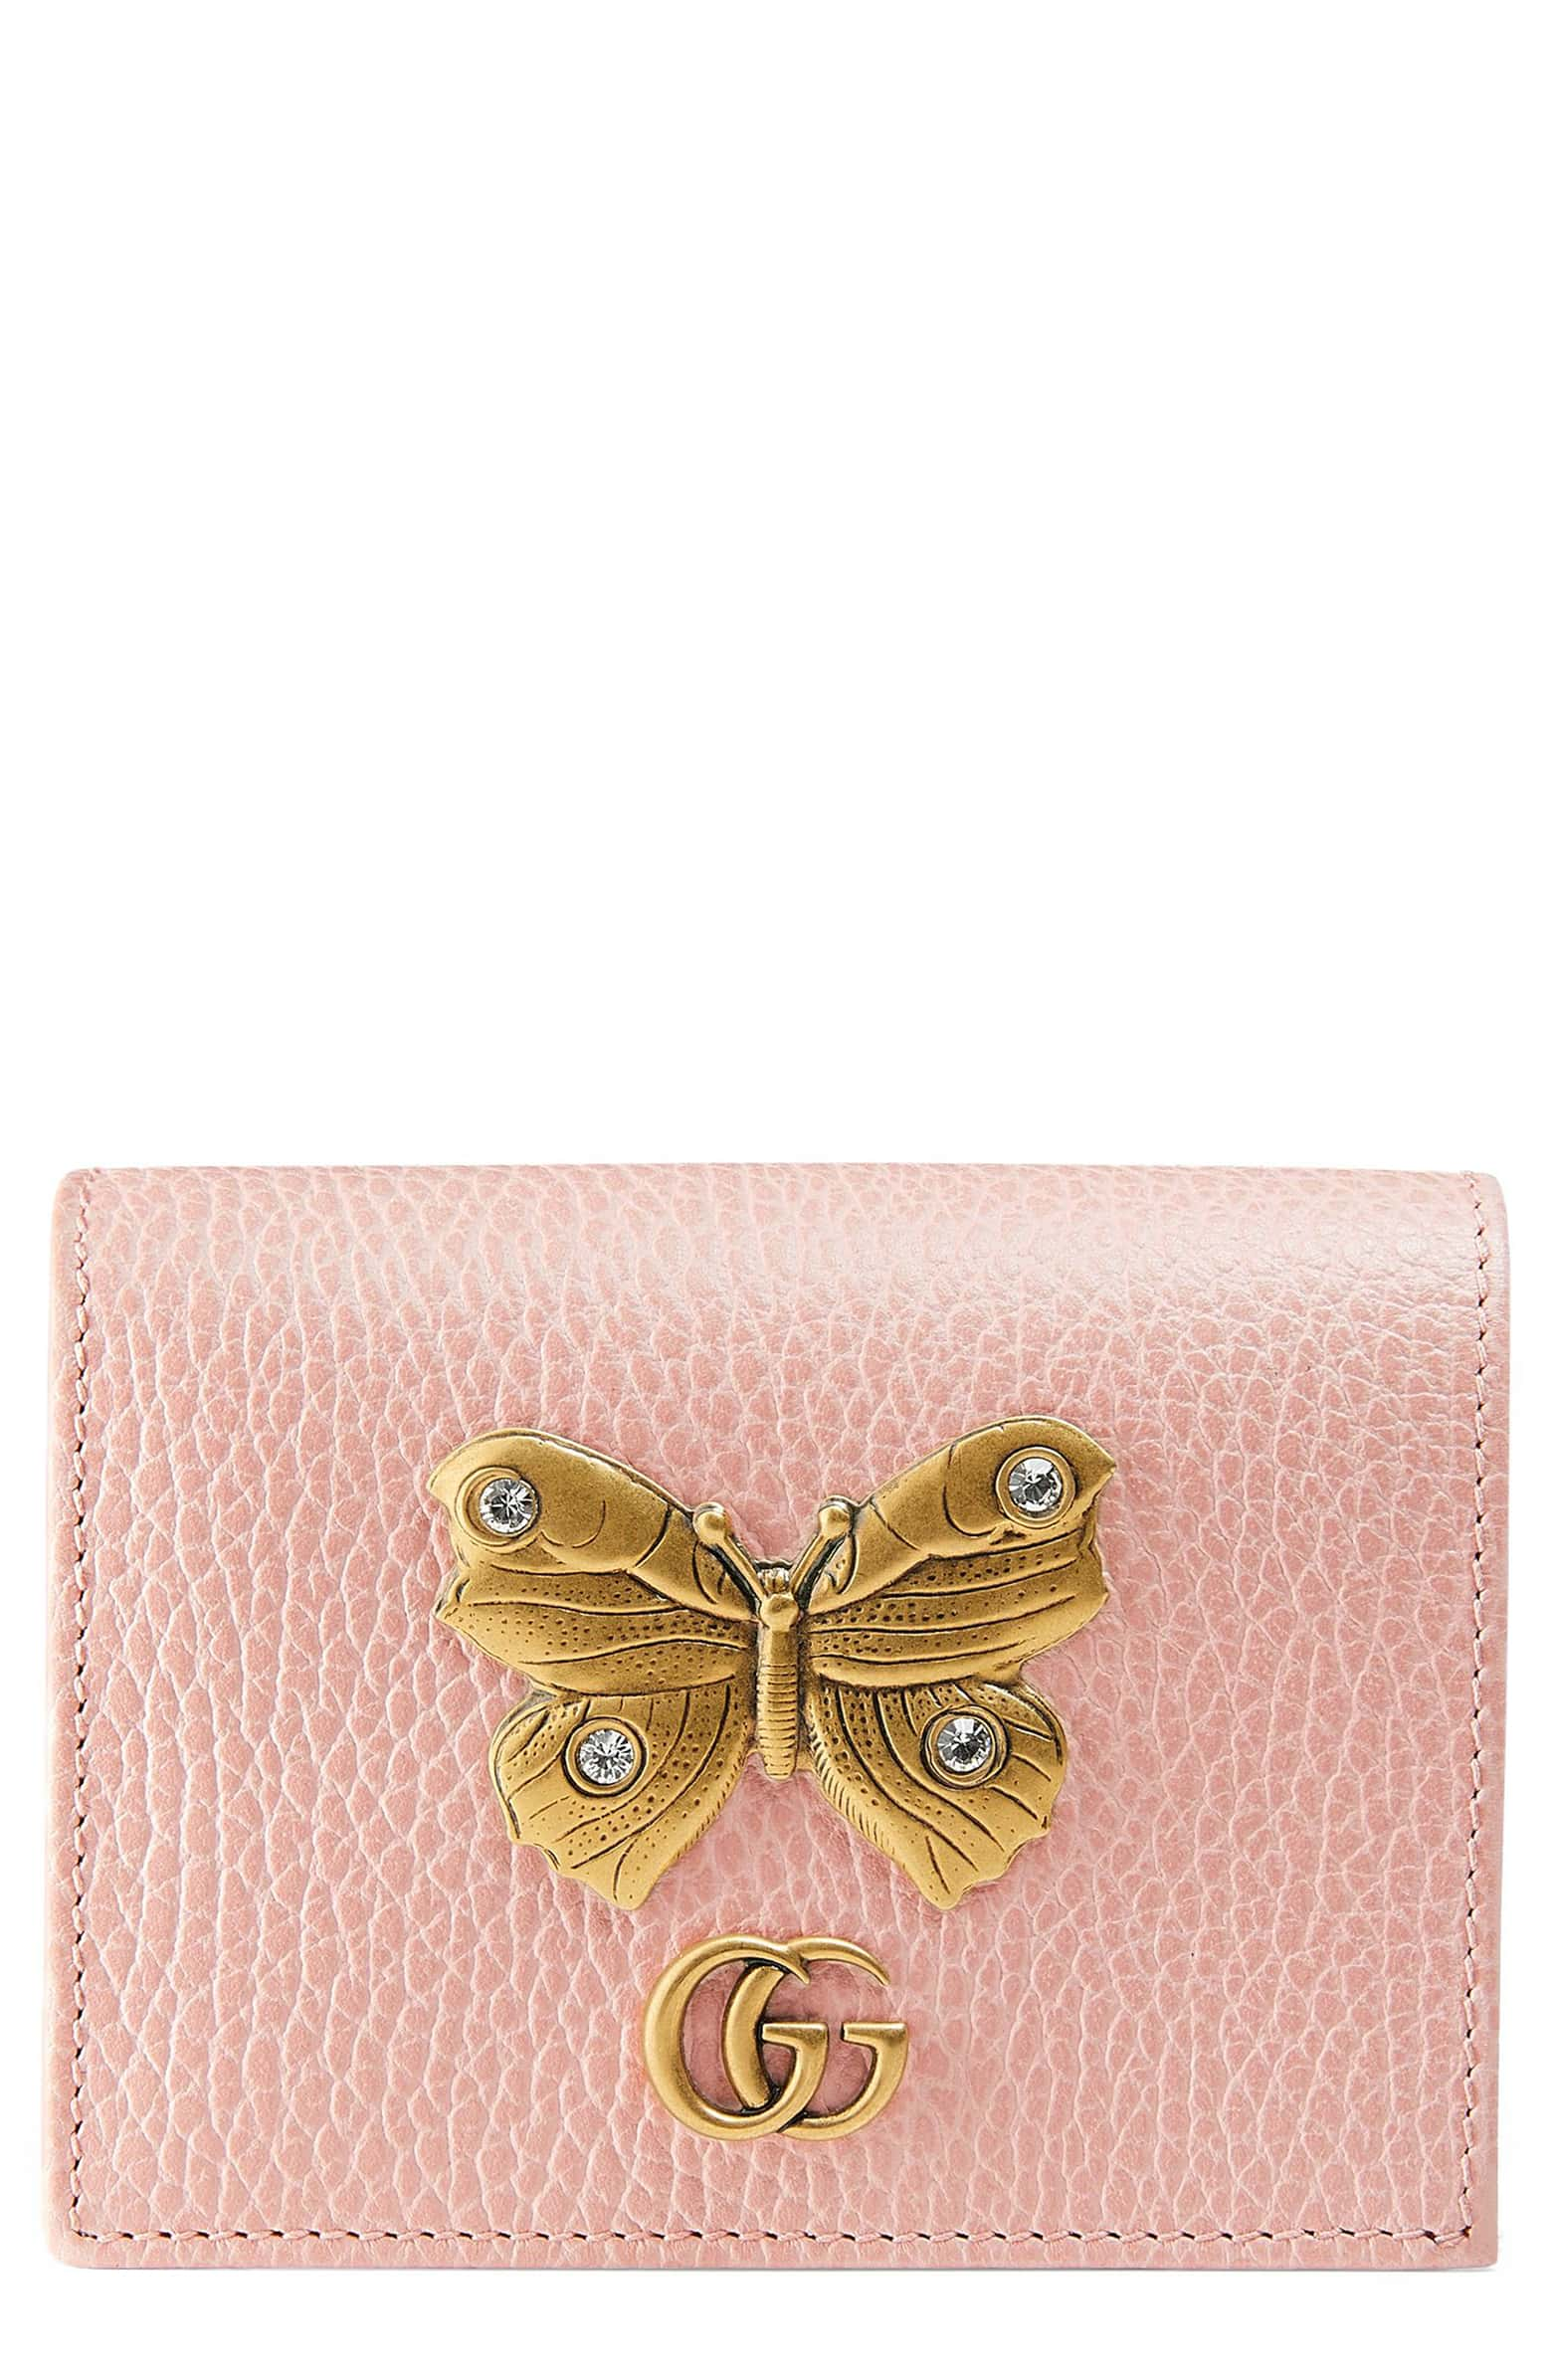 gucci butterfly wallet.jpg